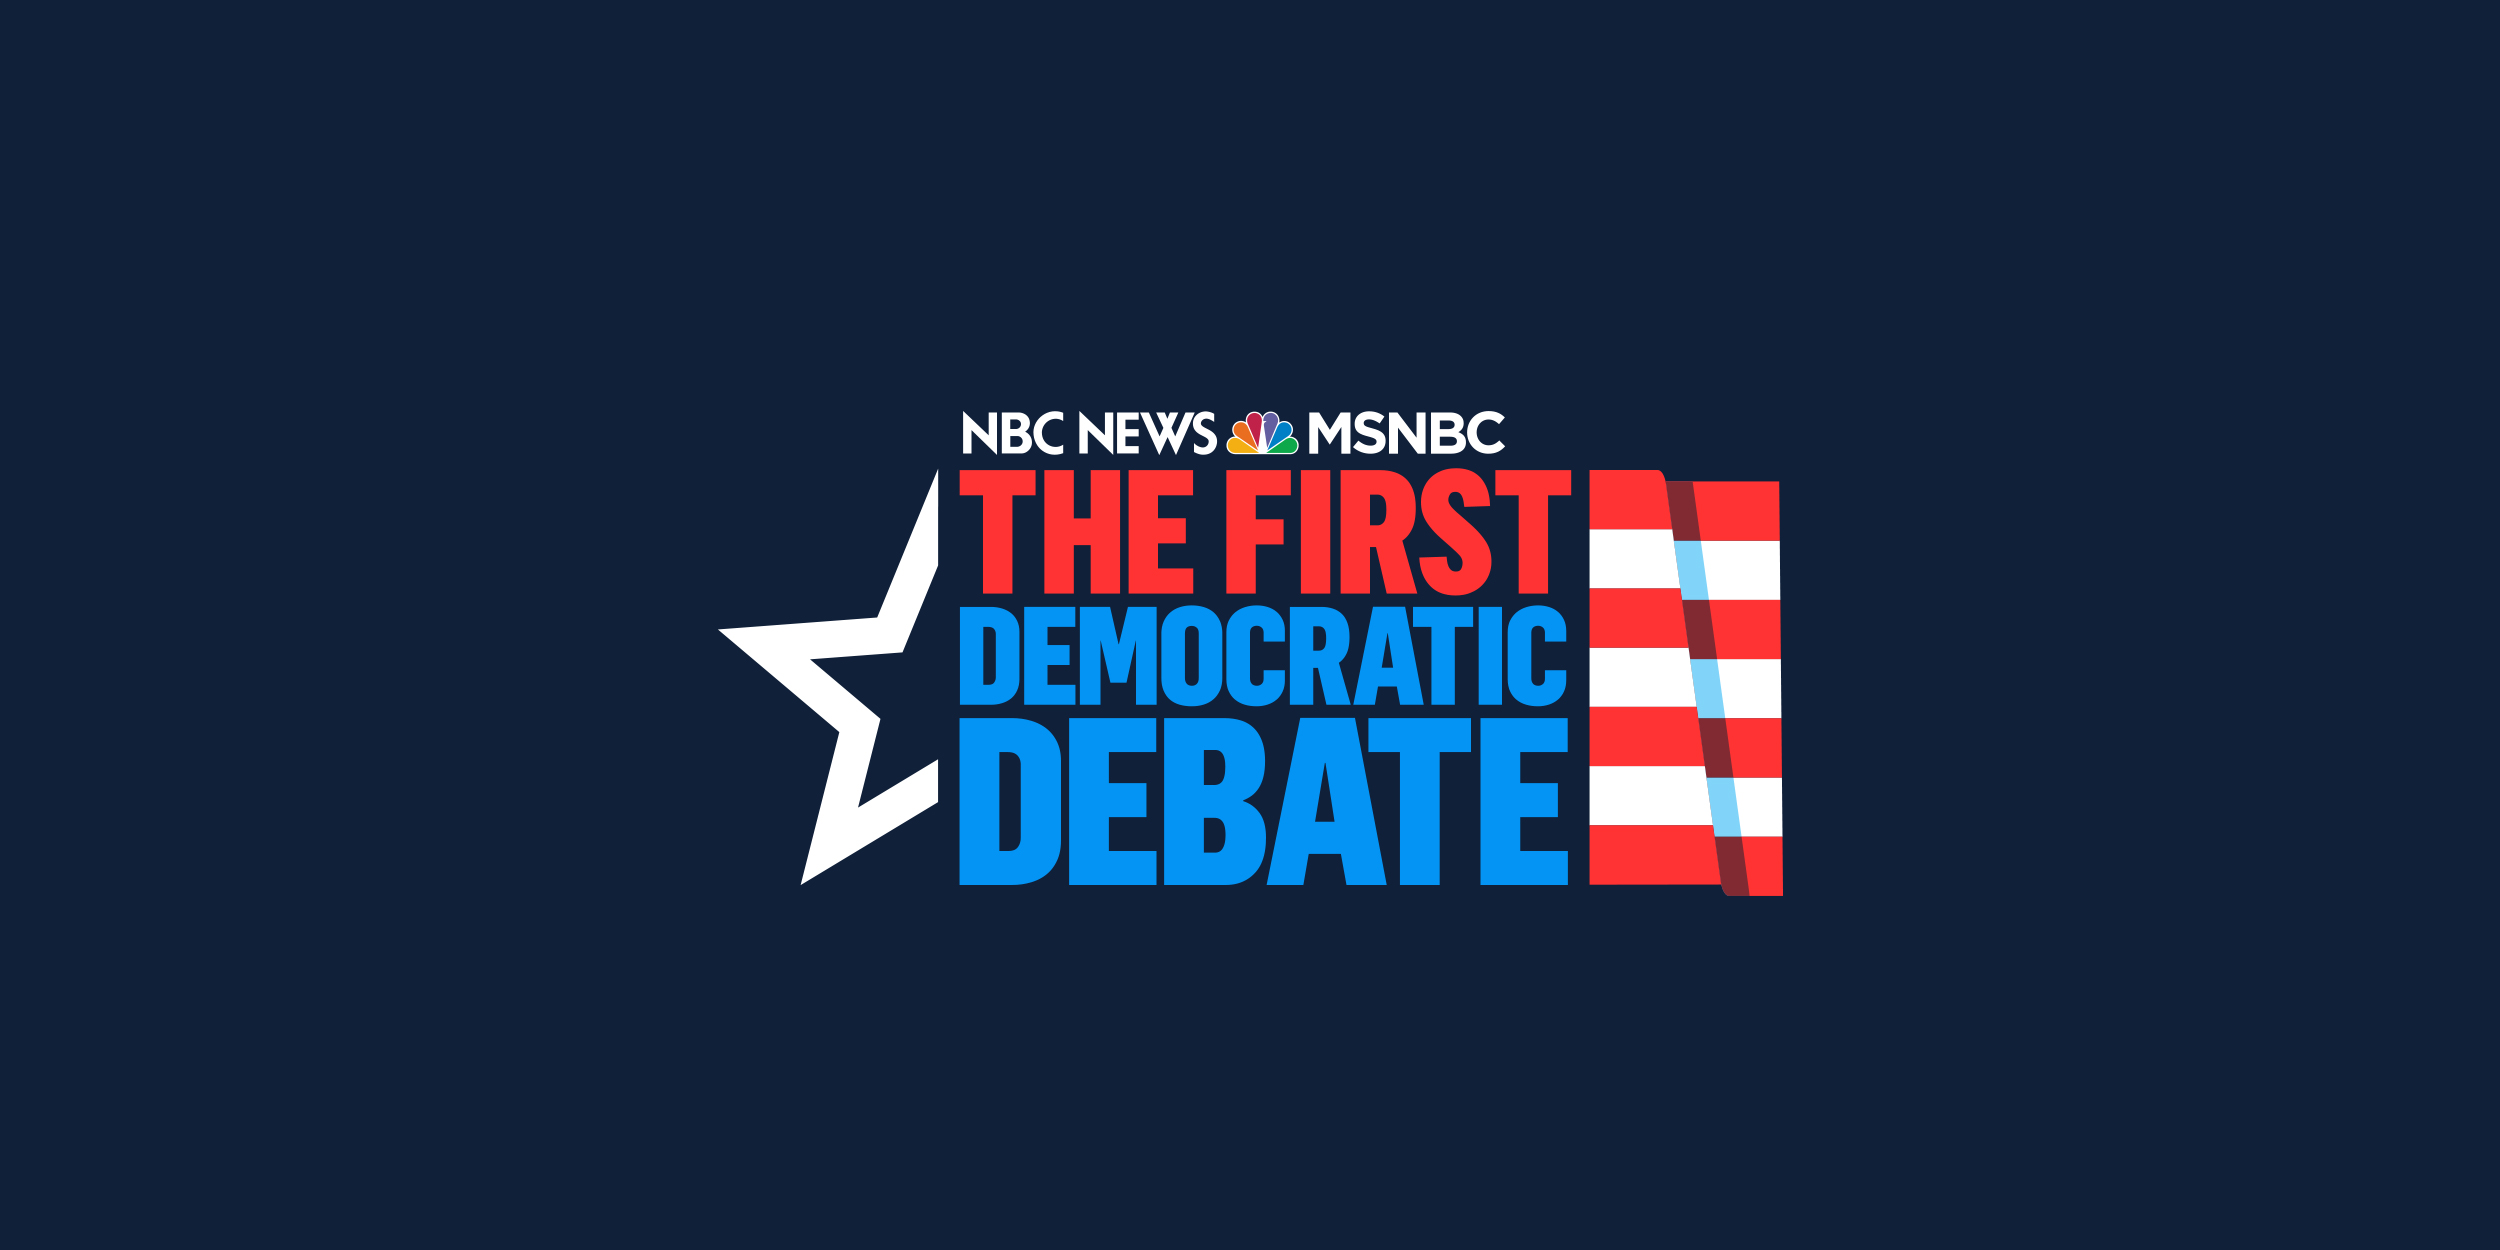 First Democratic Debate 2019: Highlights, candidates and more | NBC News